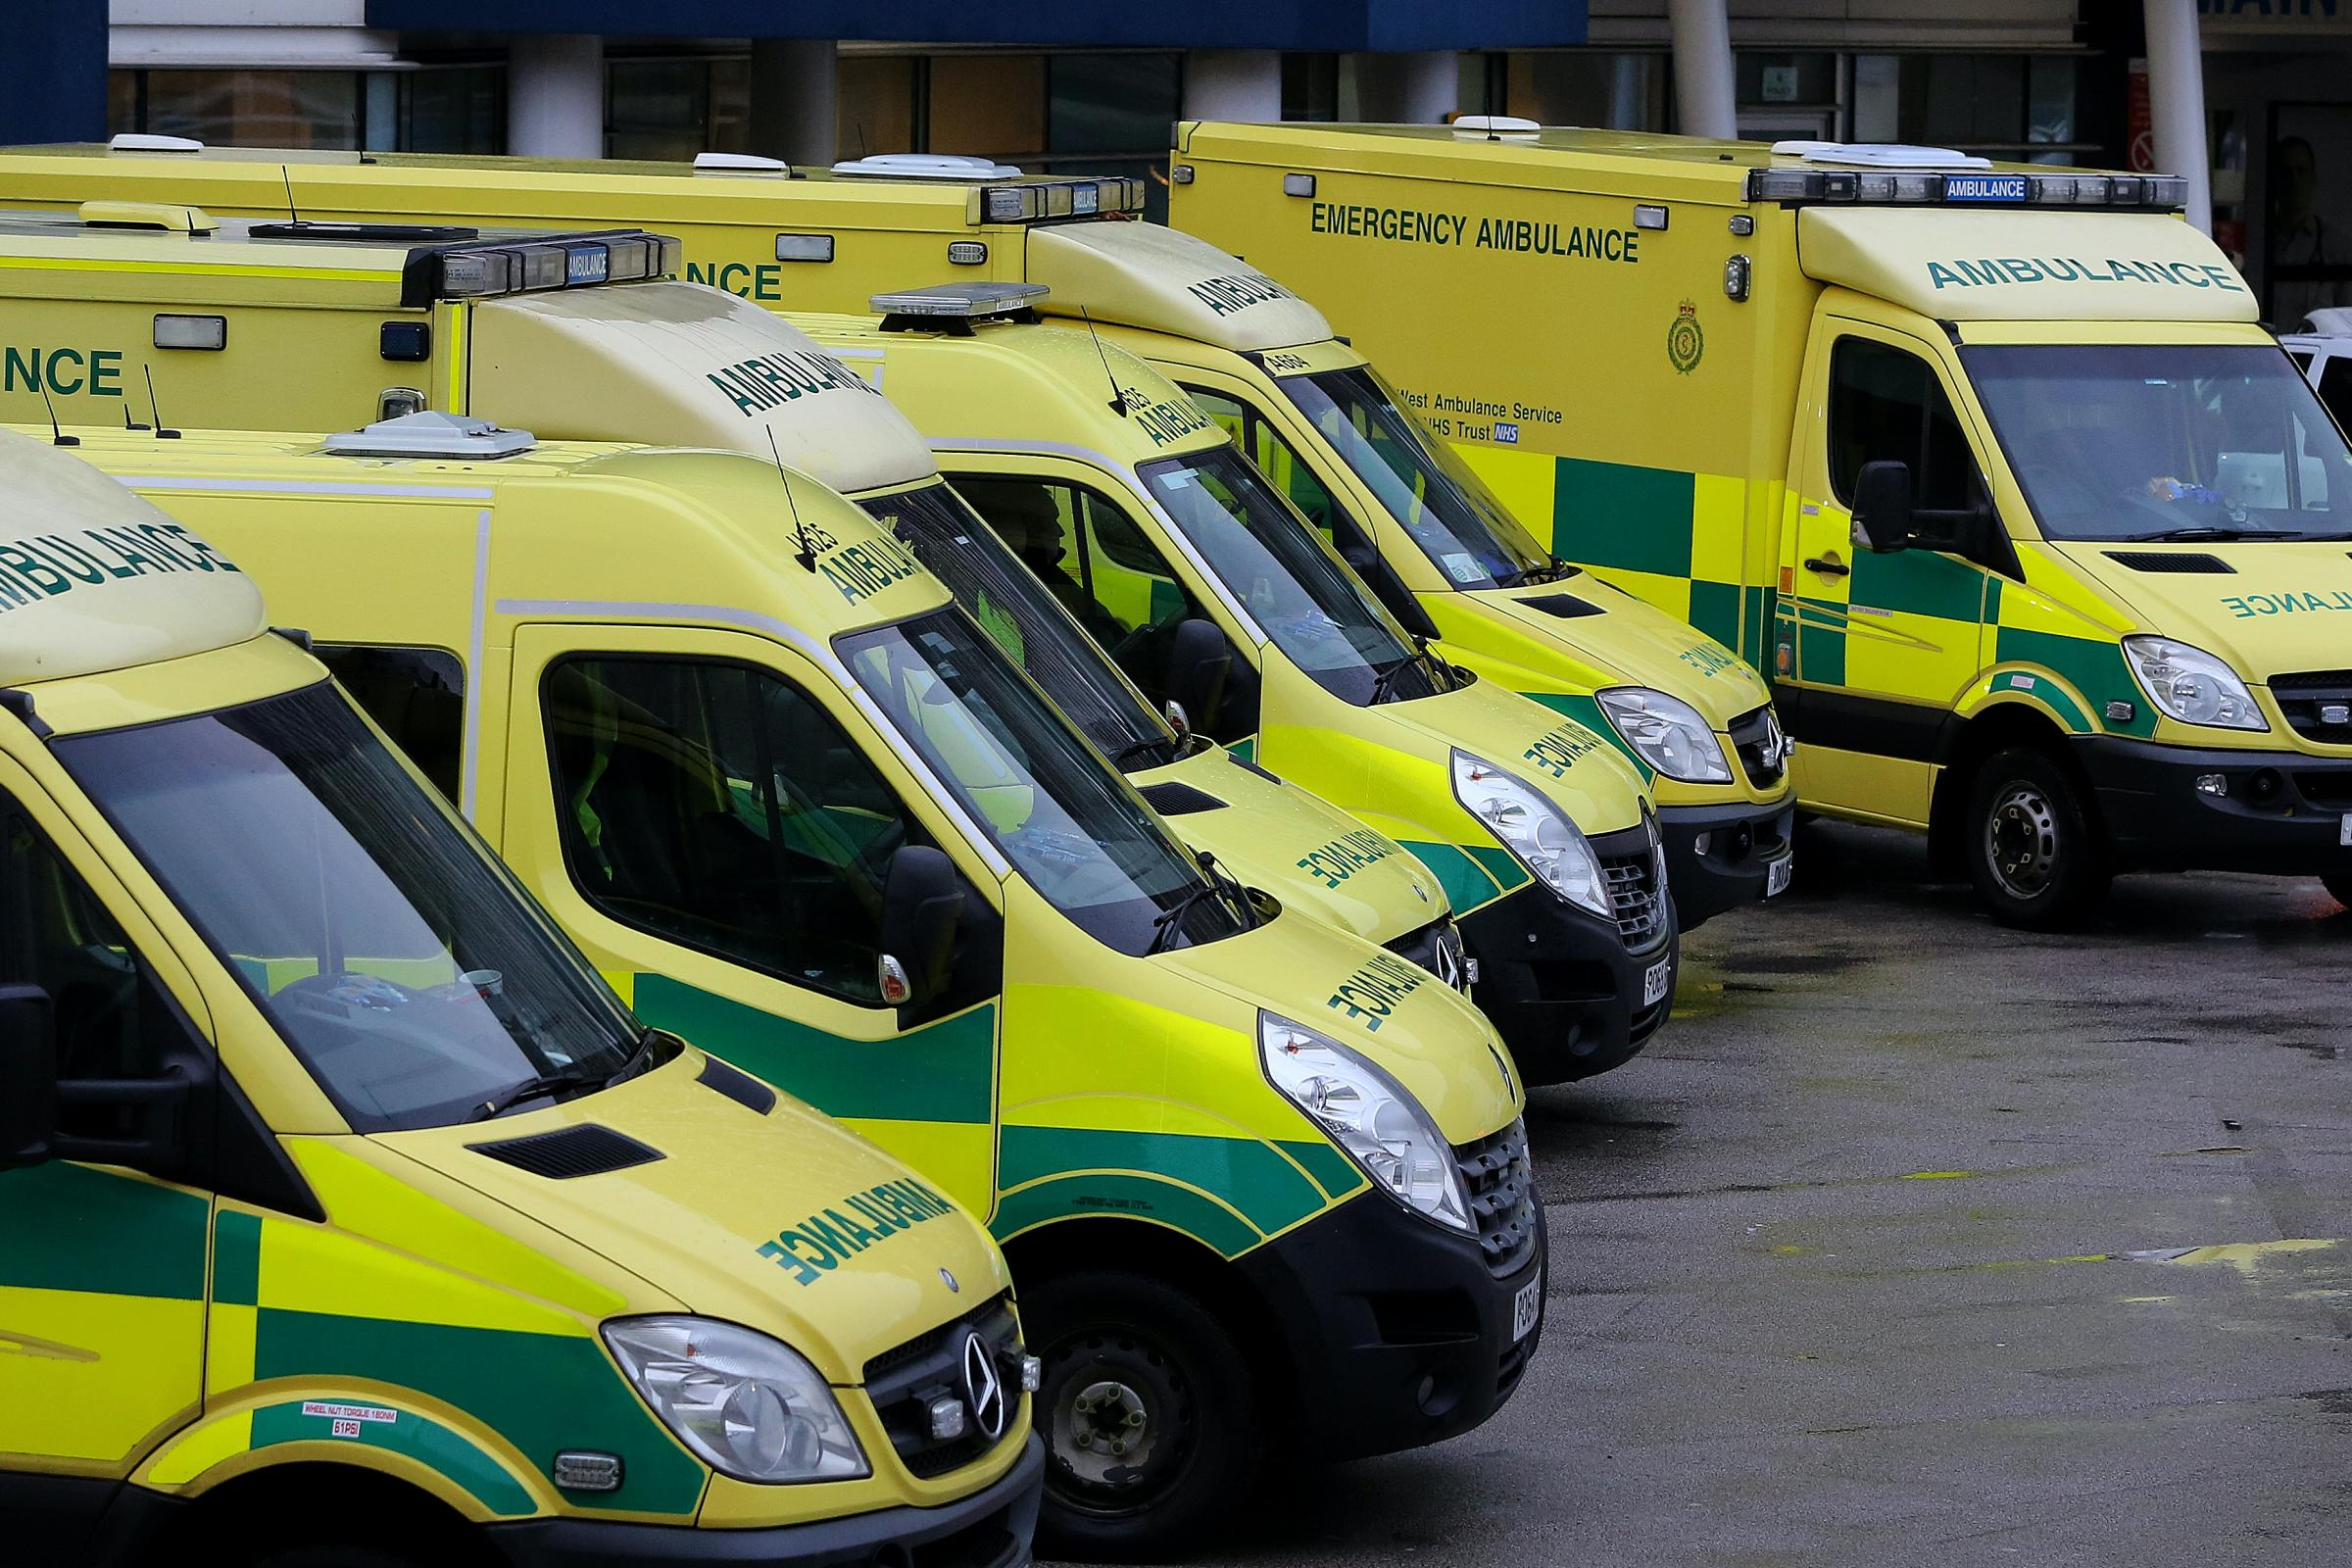 North West Ambulance Service Declares Major Incident Milford Mercury A voicy / sound effect of 'call an ambulance! milford mercury